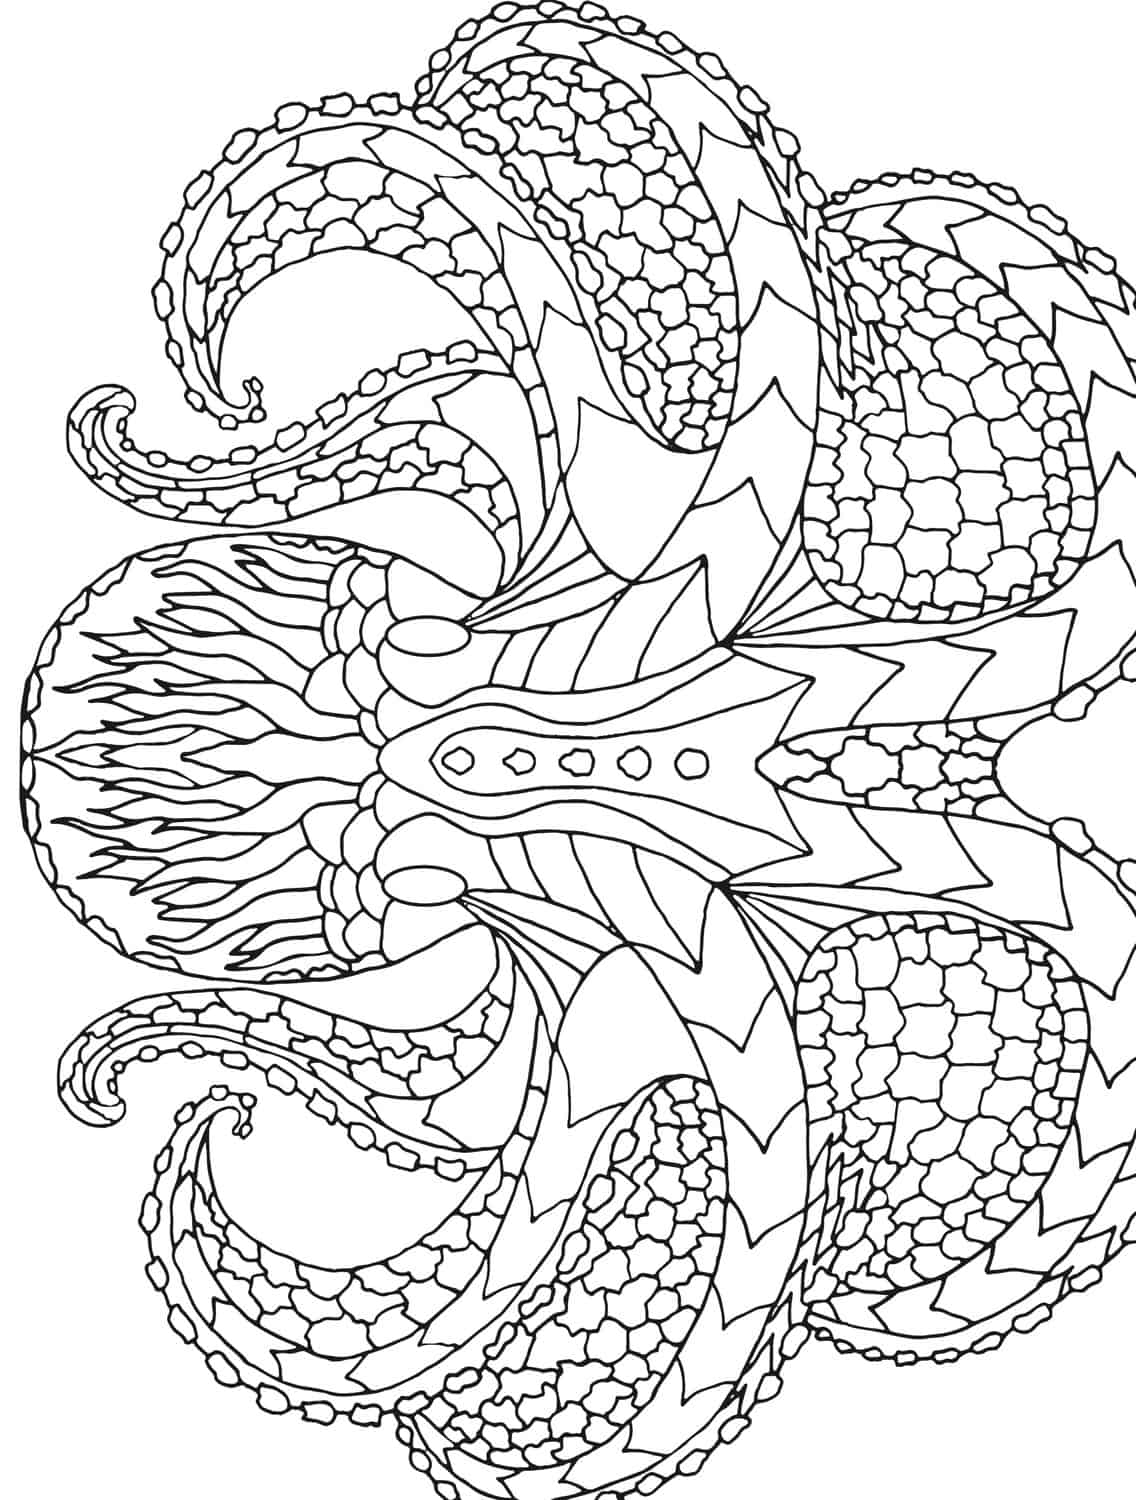 18 absurdly whimsical adult coloring pages page 7 of 20 for Funny coloring pages for adults